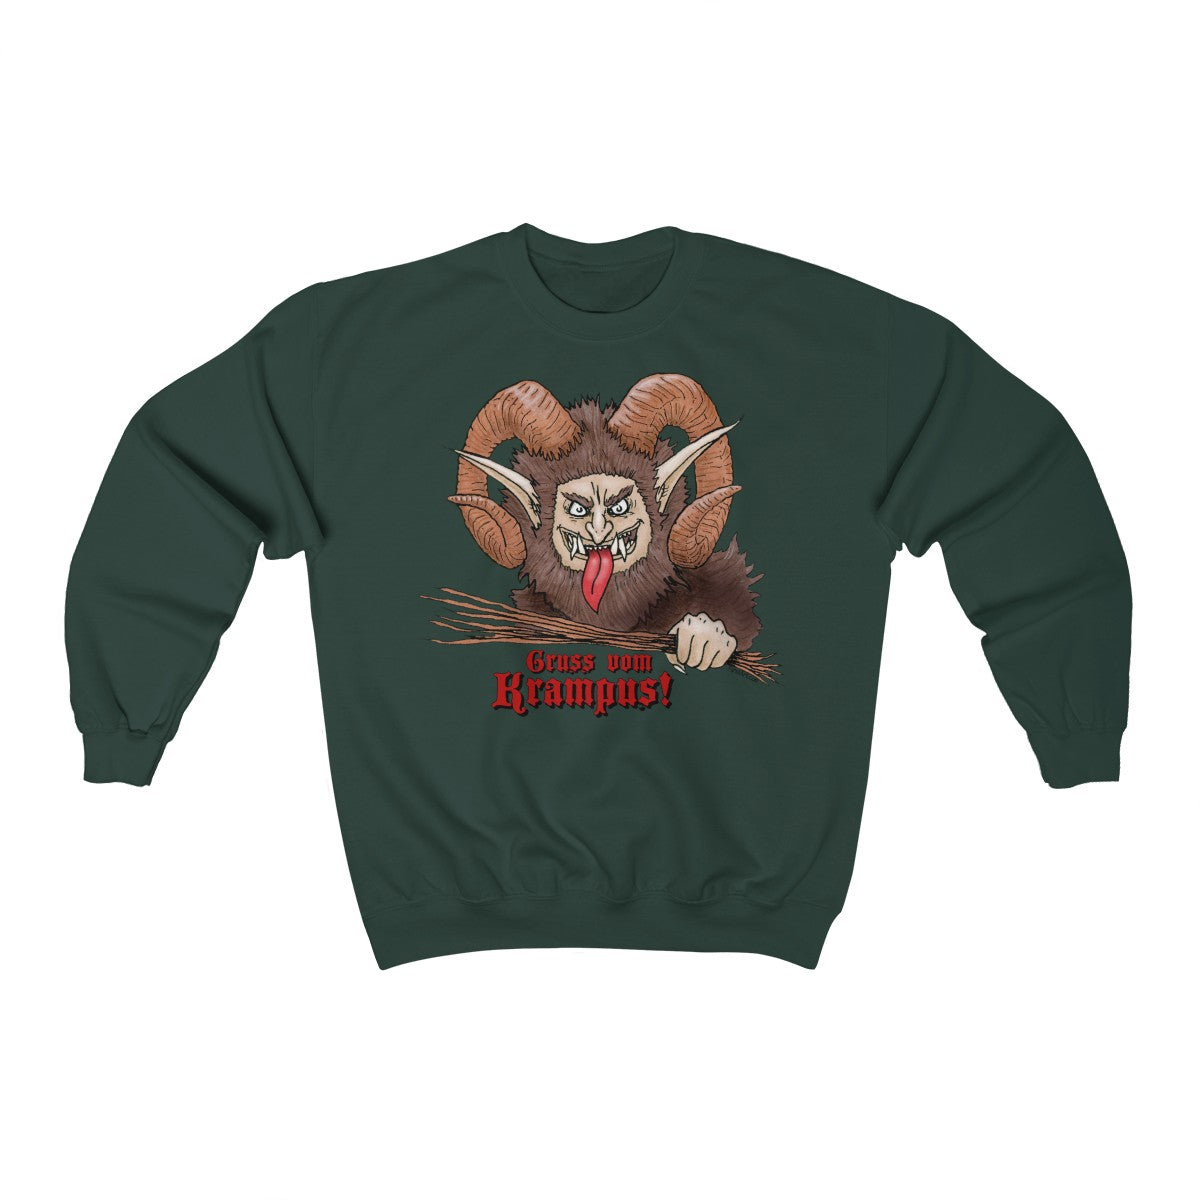 Krampus Christmas Sweater Forest Green Unisex Holiday Sweatshirt